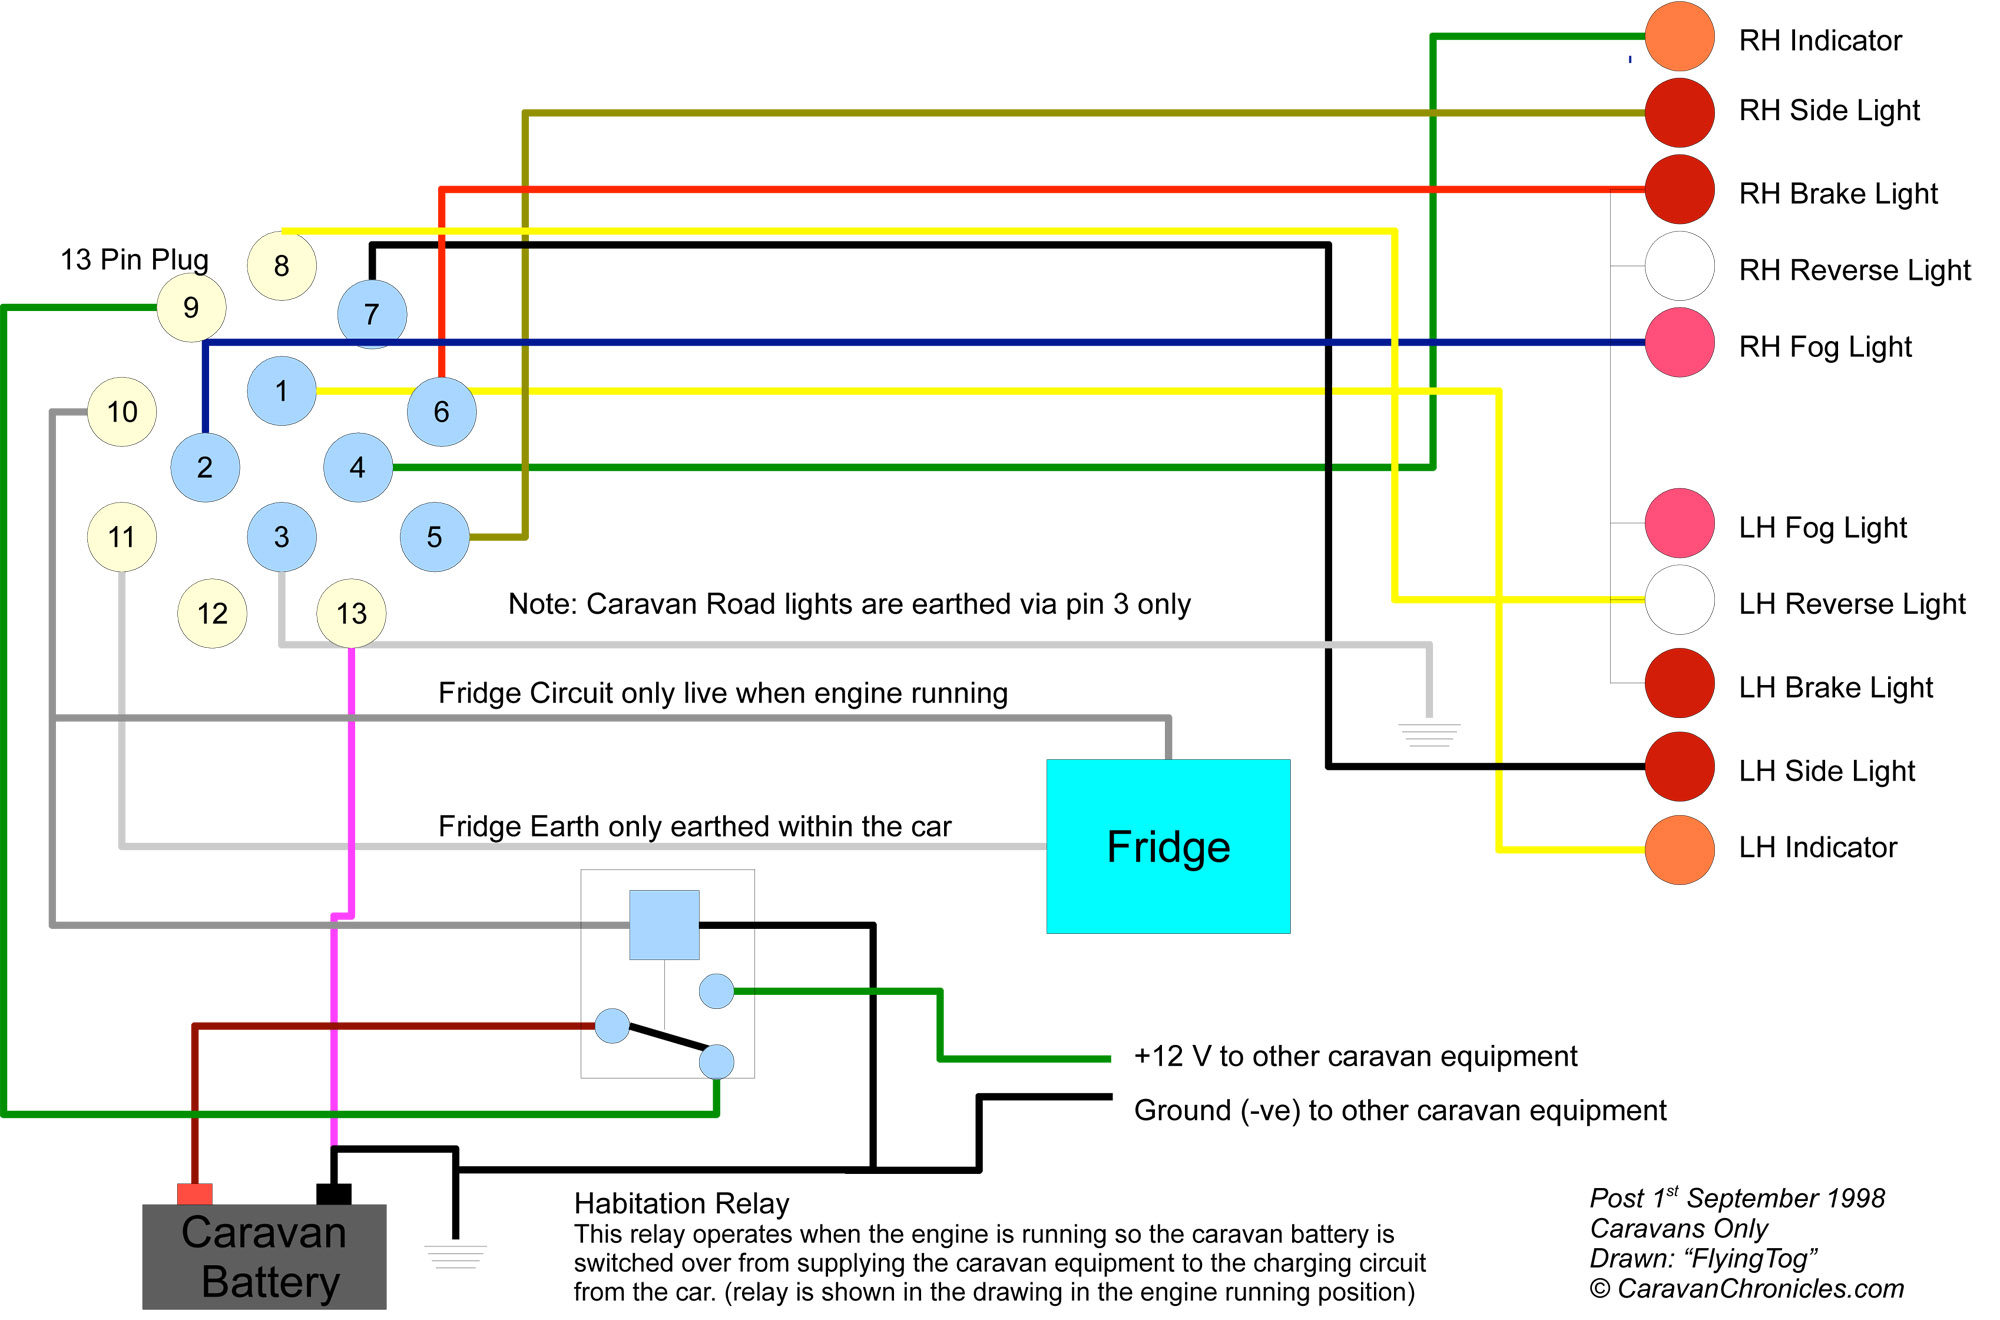 caravan wiring 13 pin understanding caravan and tow car electrics caravan chronicles caravan hook up cable wiring diagram at reclaimingppi.co